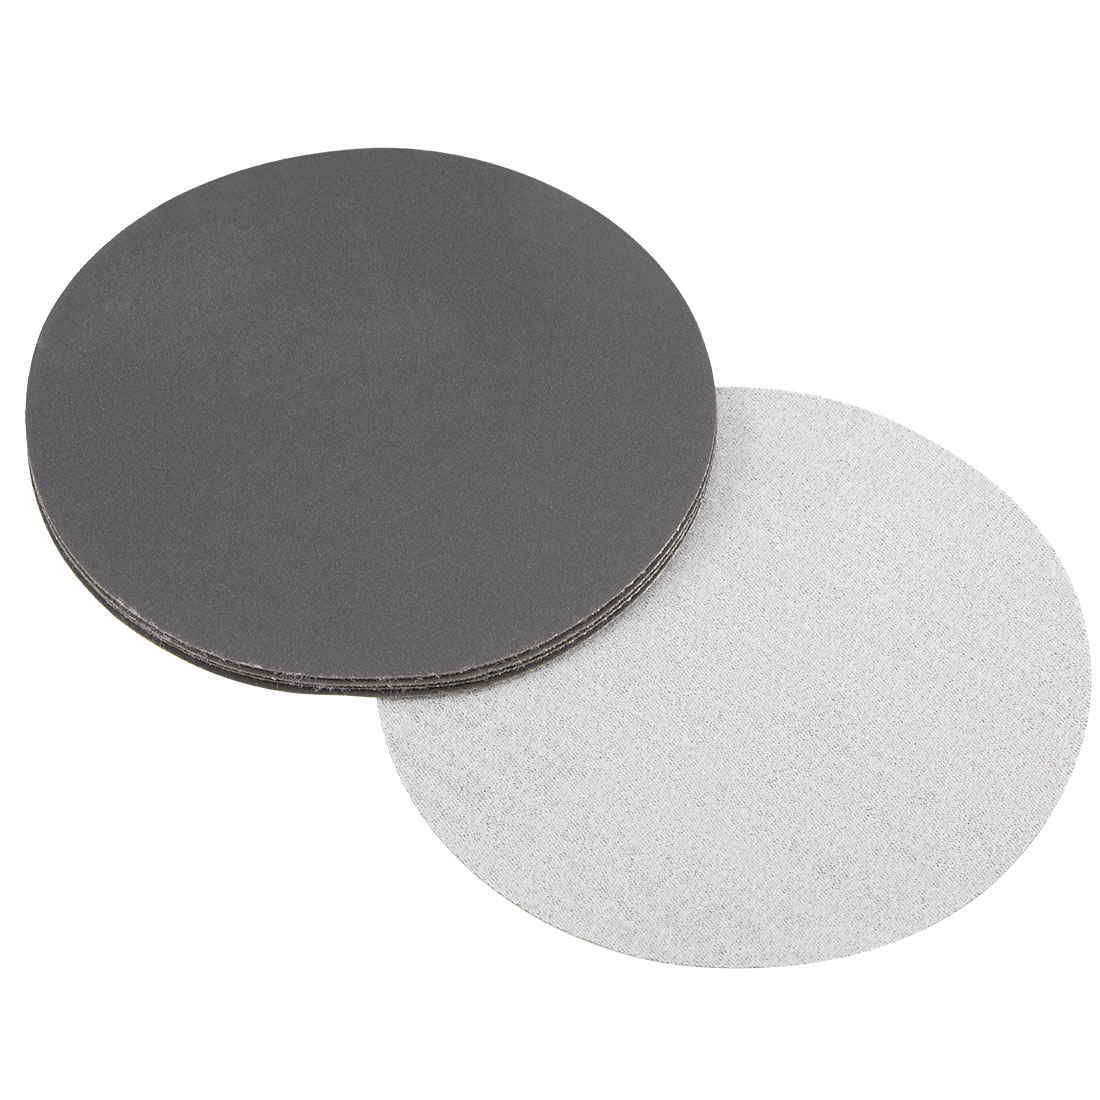 5 inch Wet Dry Discs 600 Grit Hook and Loop Sanding Disc Silicon Carbide 5pcs